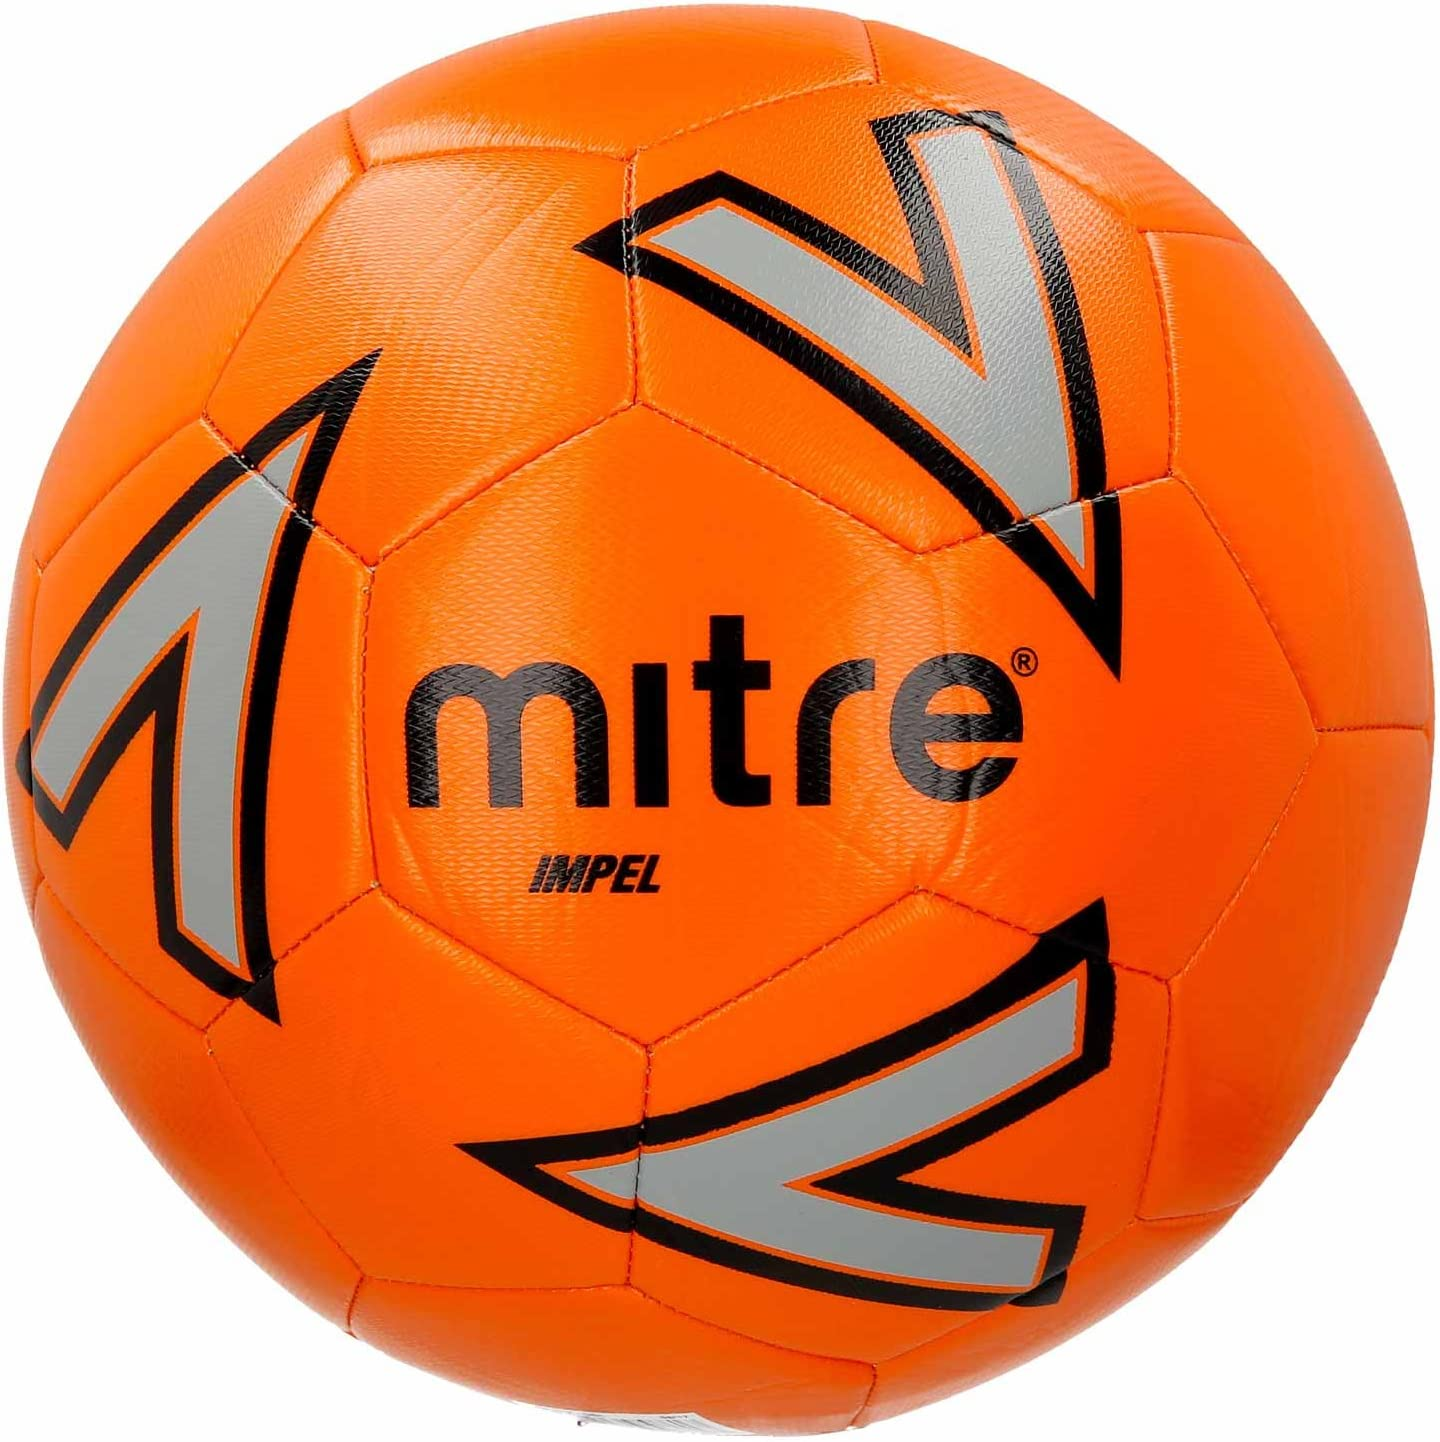 A Pair Of Large Pop Up Football Goals 1 x Mitre Training Football For Club Park or at Home in the Garden Training Big Game Hunters Football Goals Set 10 x Football Cones and a Ball Pump